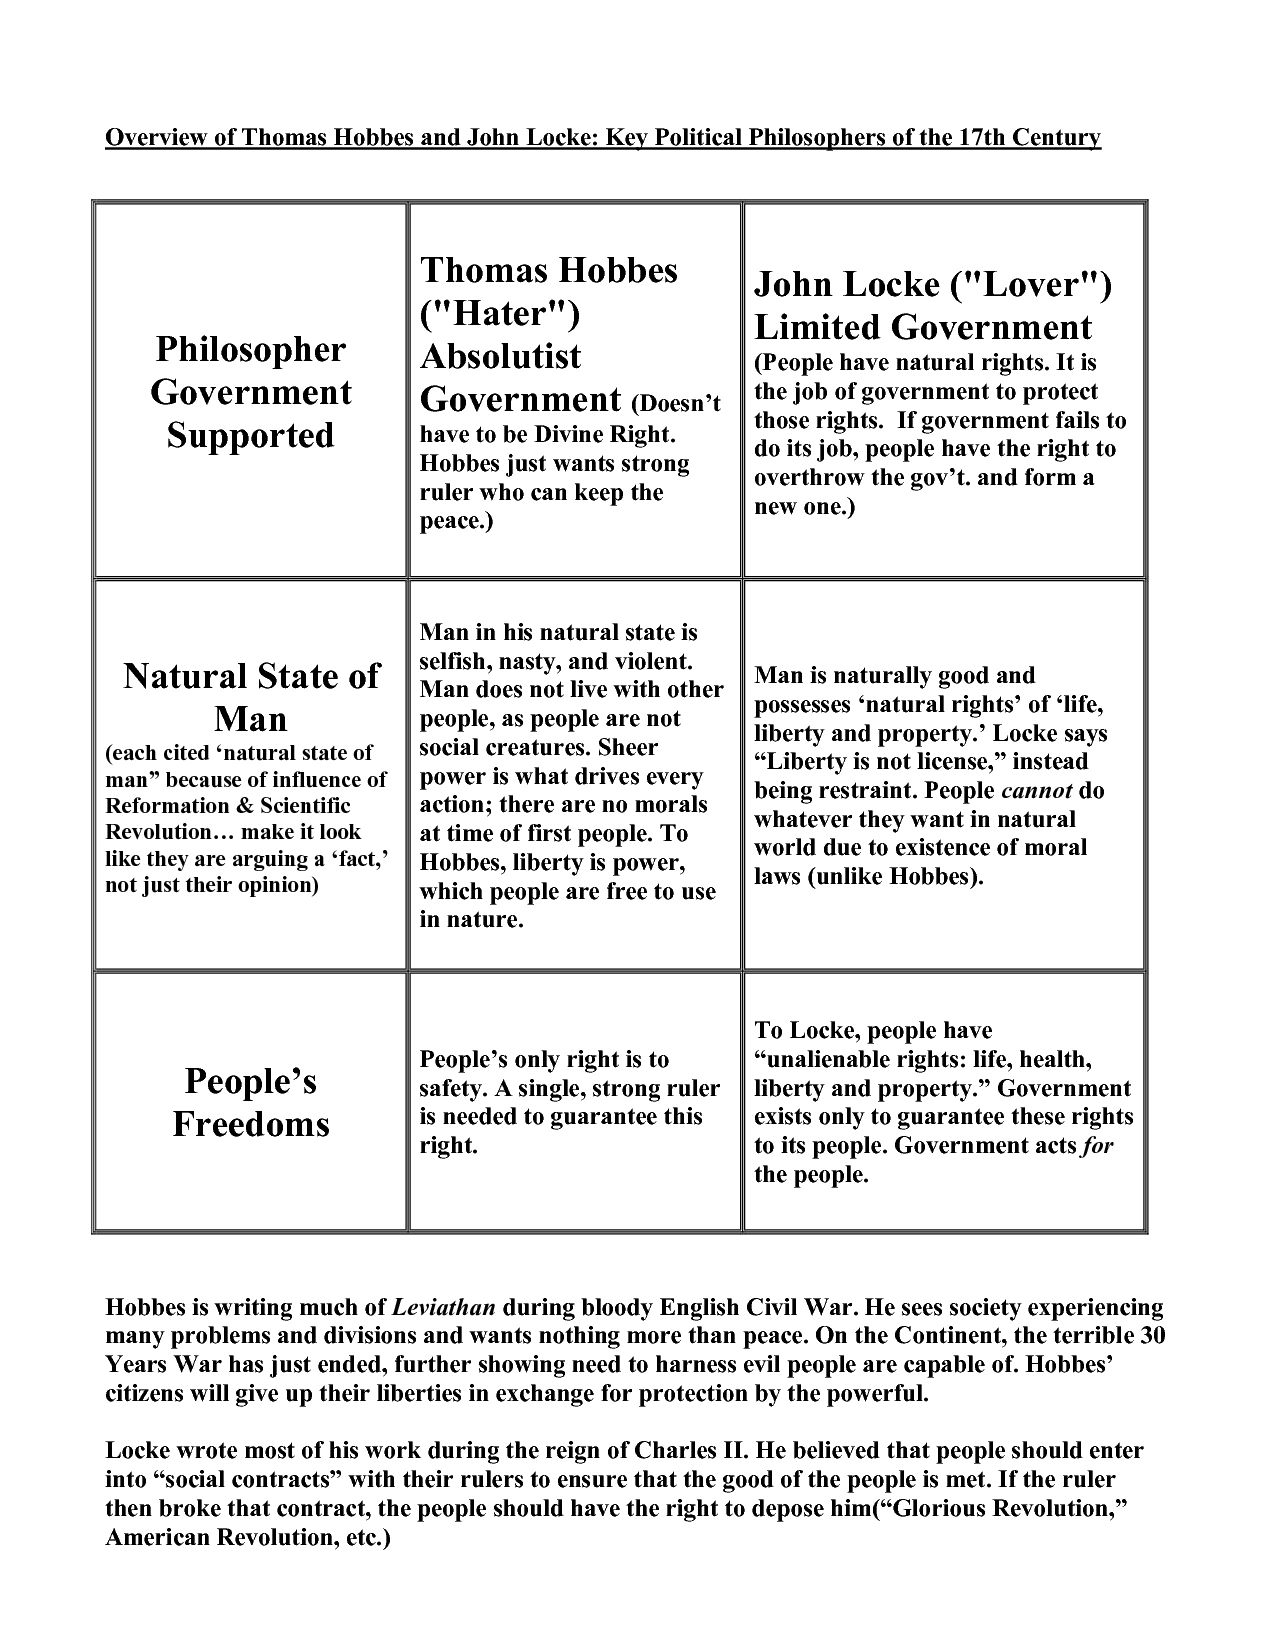 social contract theory of john locke essay Learn about social contract theory and what some important thinkers from the 1600s onward had to say three enlightenment thinkers are usually credited with establishing a standard view of social contract theory: thomas hobbes, john locke go to essay writing your ap world history.